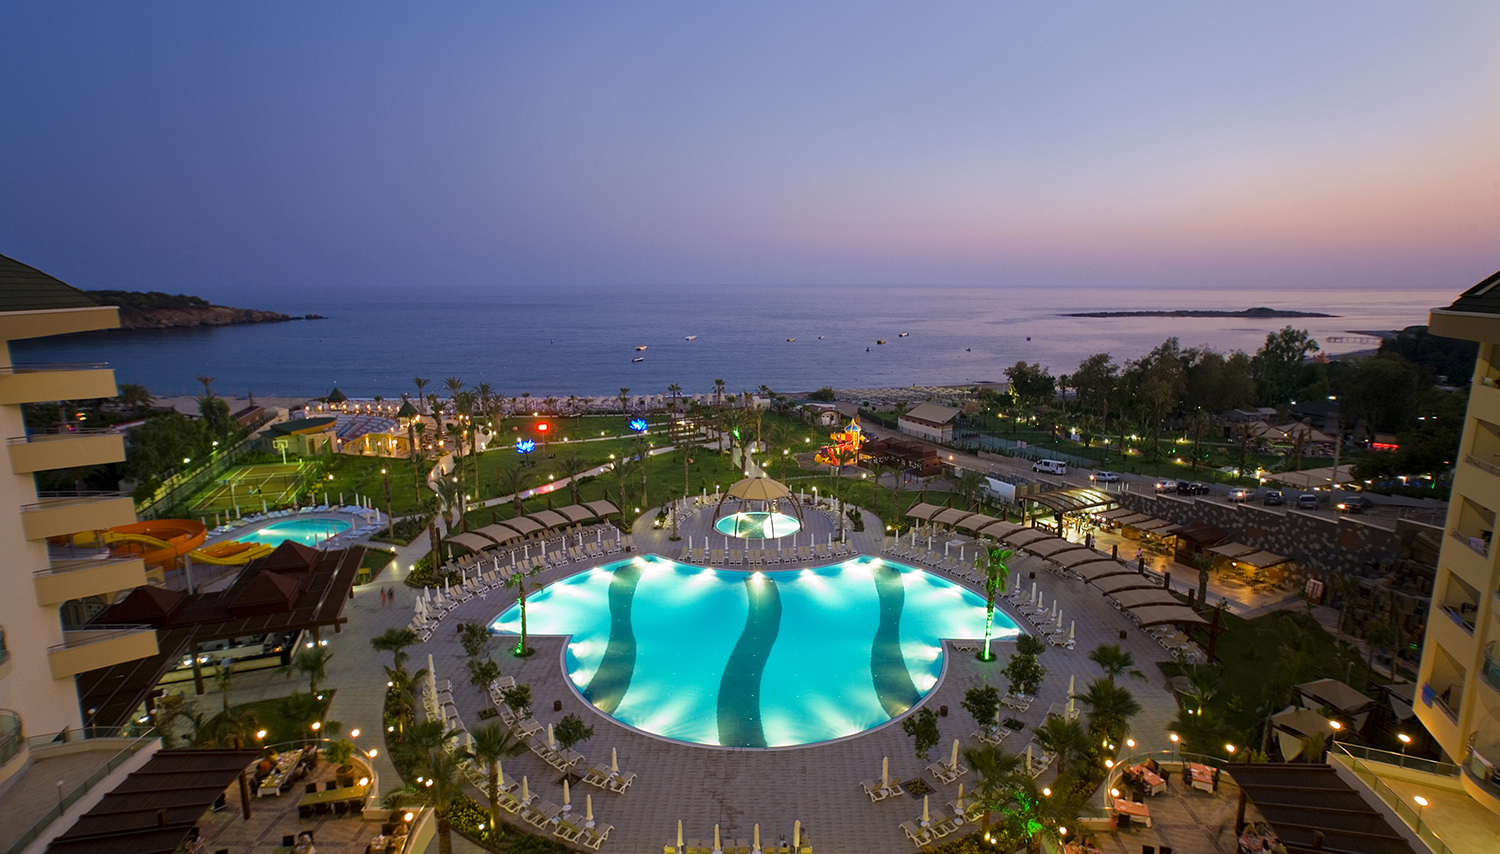 Saphir Resort & Spa hotell (Antalya, Türgi)